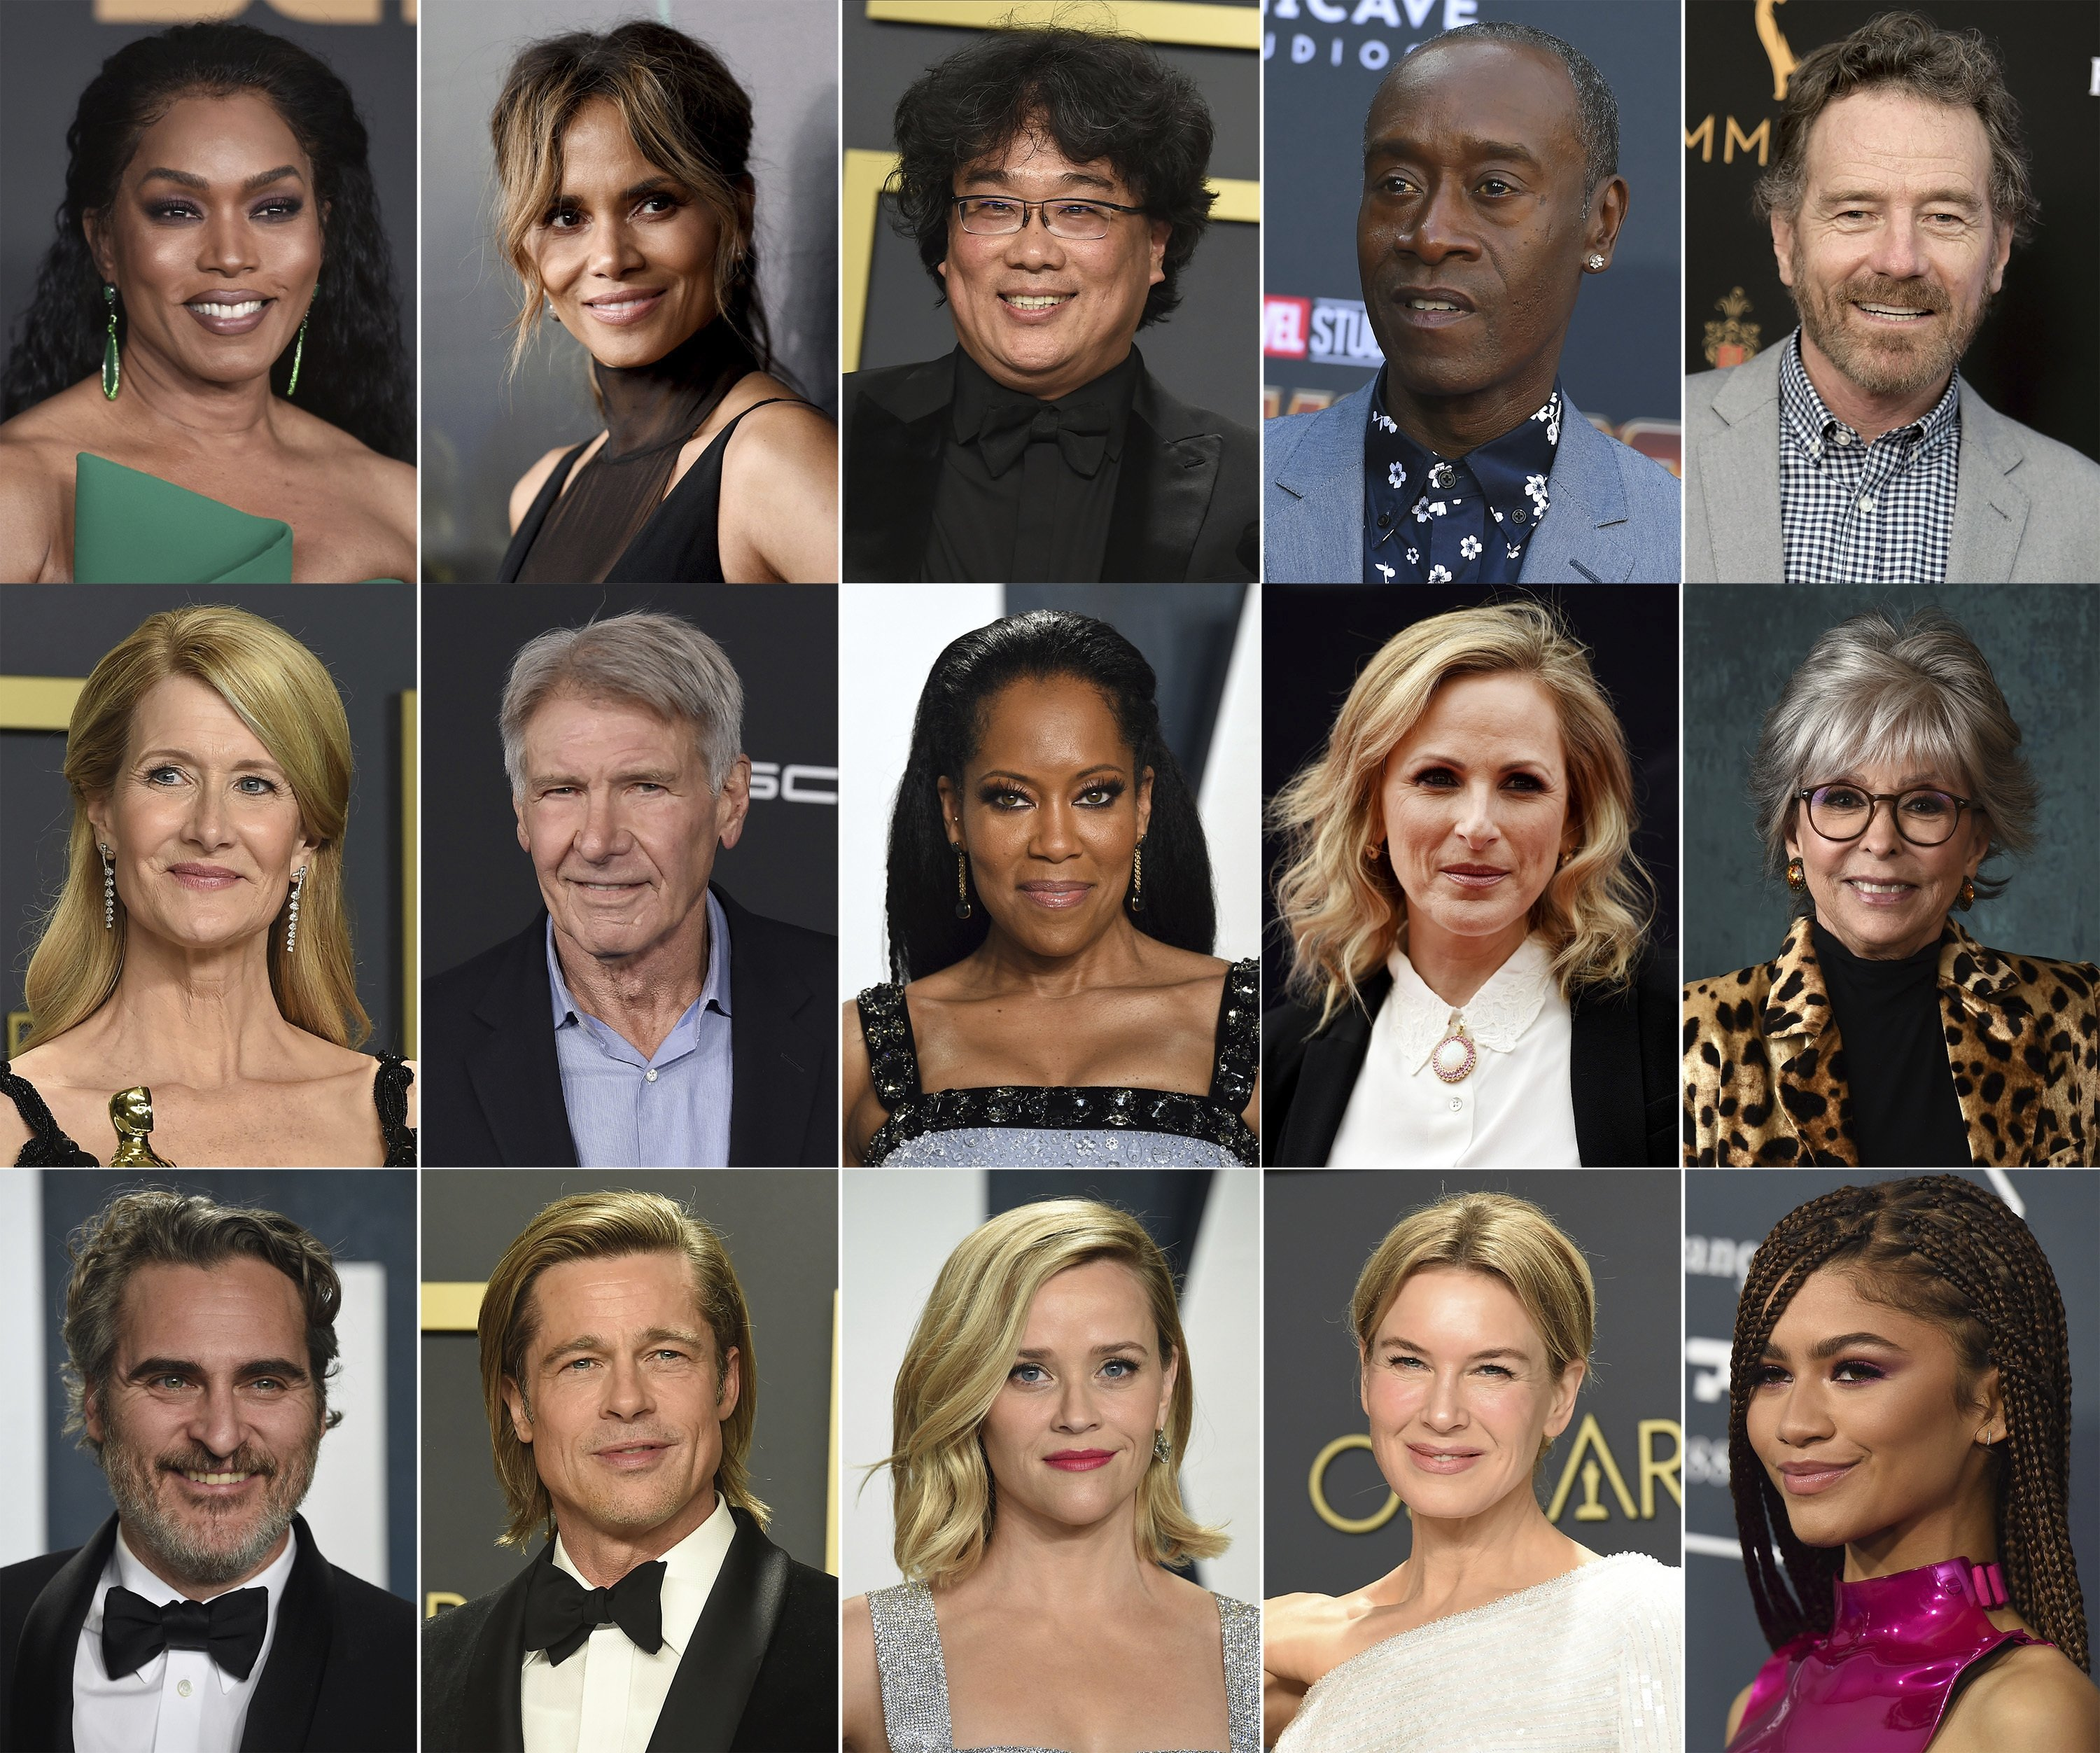 This set of photos (left to right, top to bottom) shows Angela Bassett, Halle Berry, Bong Joon Ho, Don Cheadle and Brian Cranston;  (2nd row) Laura Dern, Harrison Ford, Regina King, Marley Matlin, and Rita Moreno;  (Third grade) Joaquin Phoenix, Brad Pitt, Reese Witherspoon, Renee Zellweger and Zendaya, who will perform at the 93rd Academy Awards on April 25 (AP Photo)